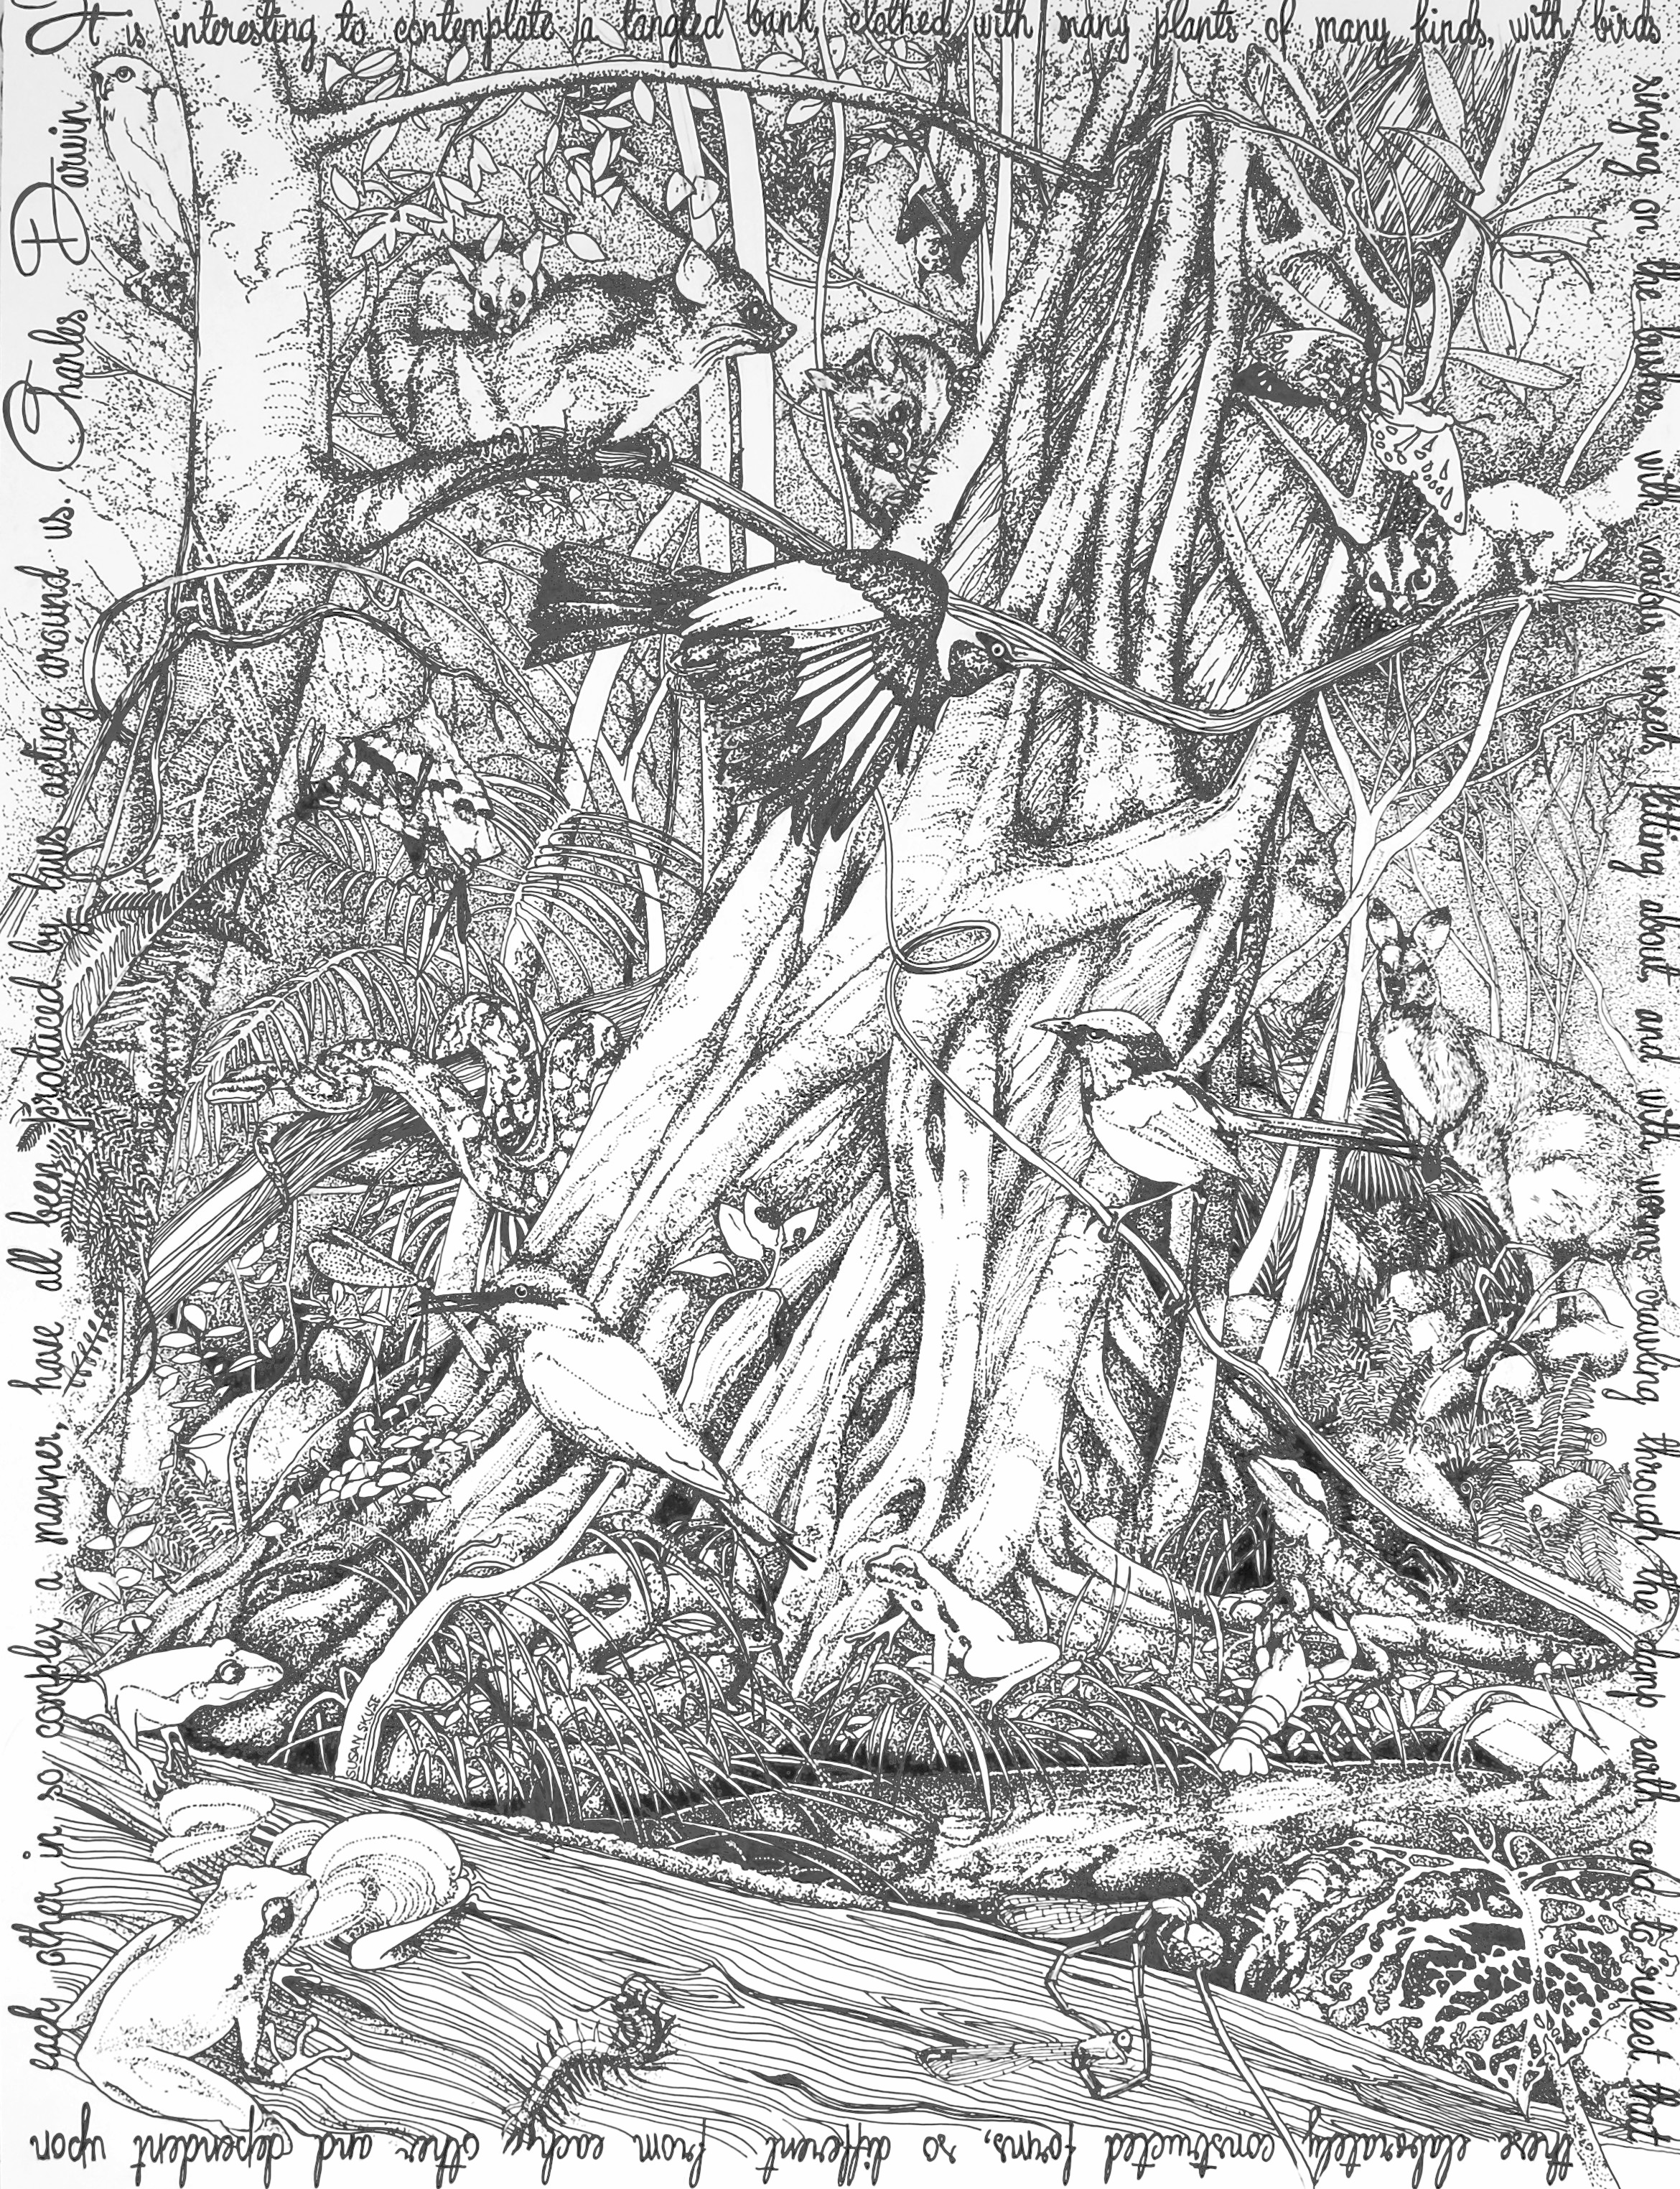 Drawn rainforest pen and ink Cms paper Canson on and